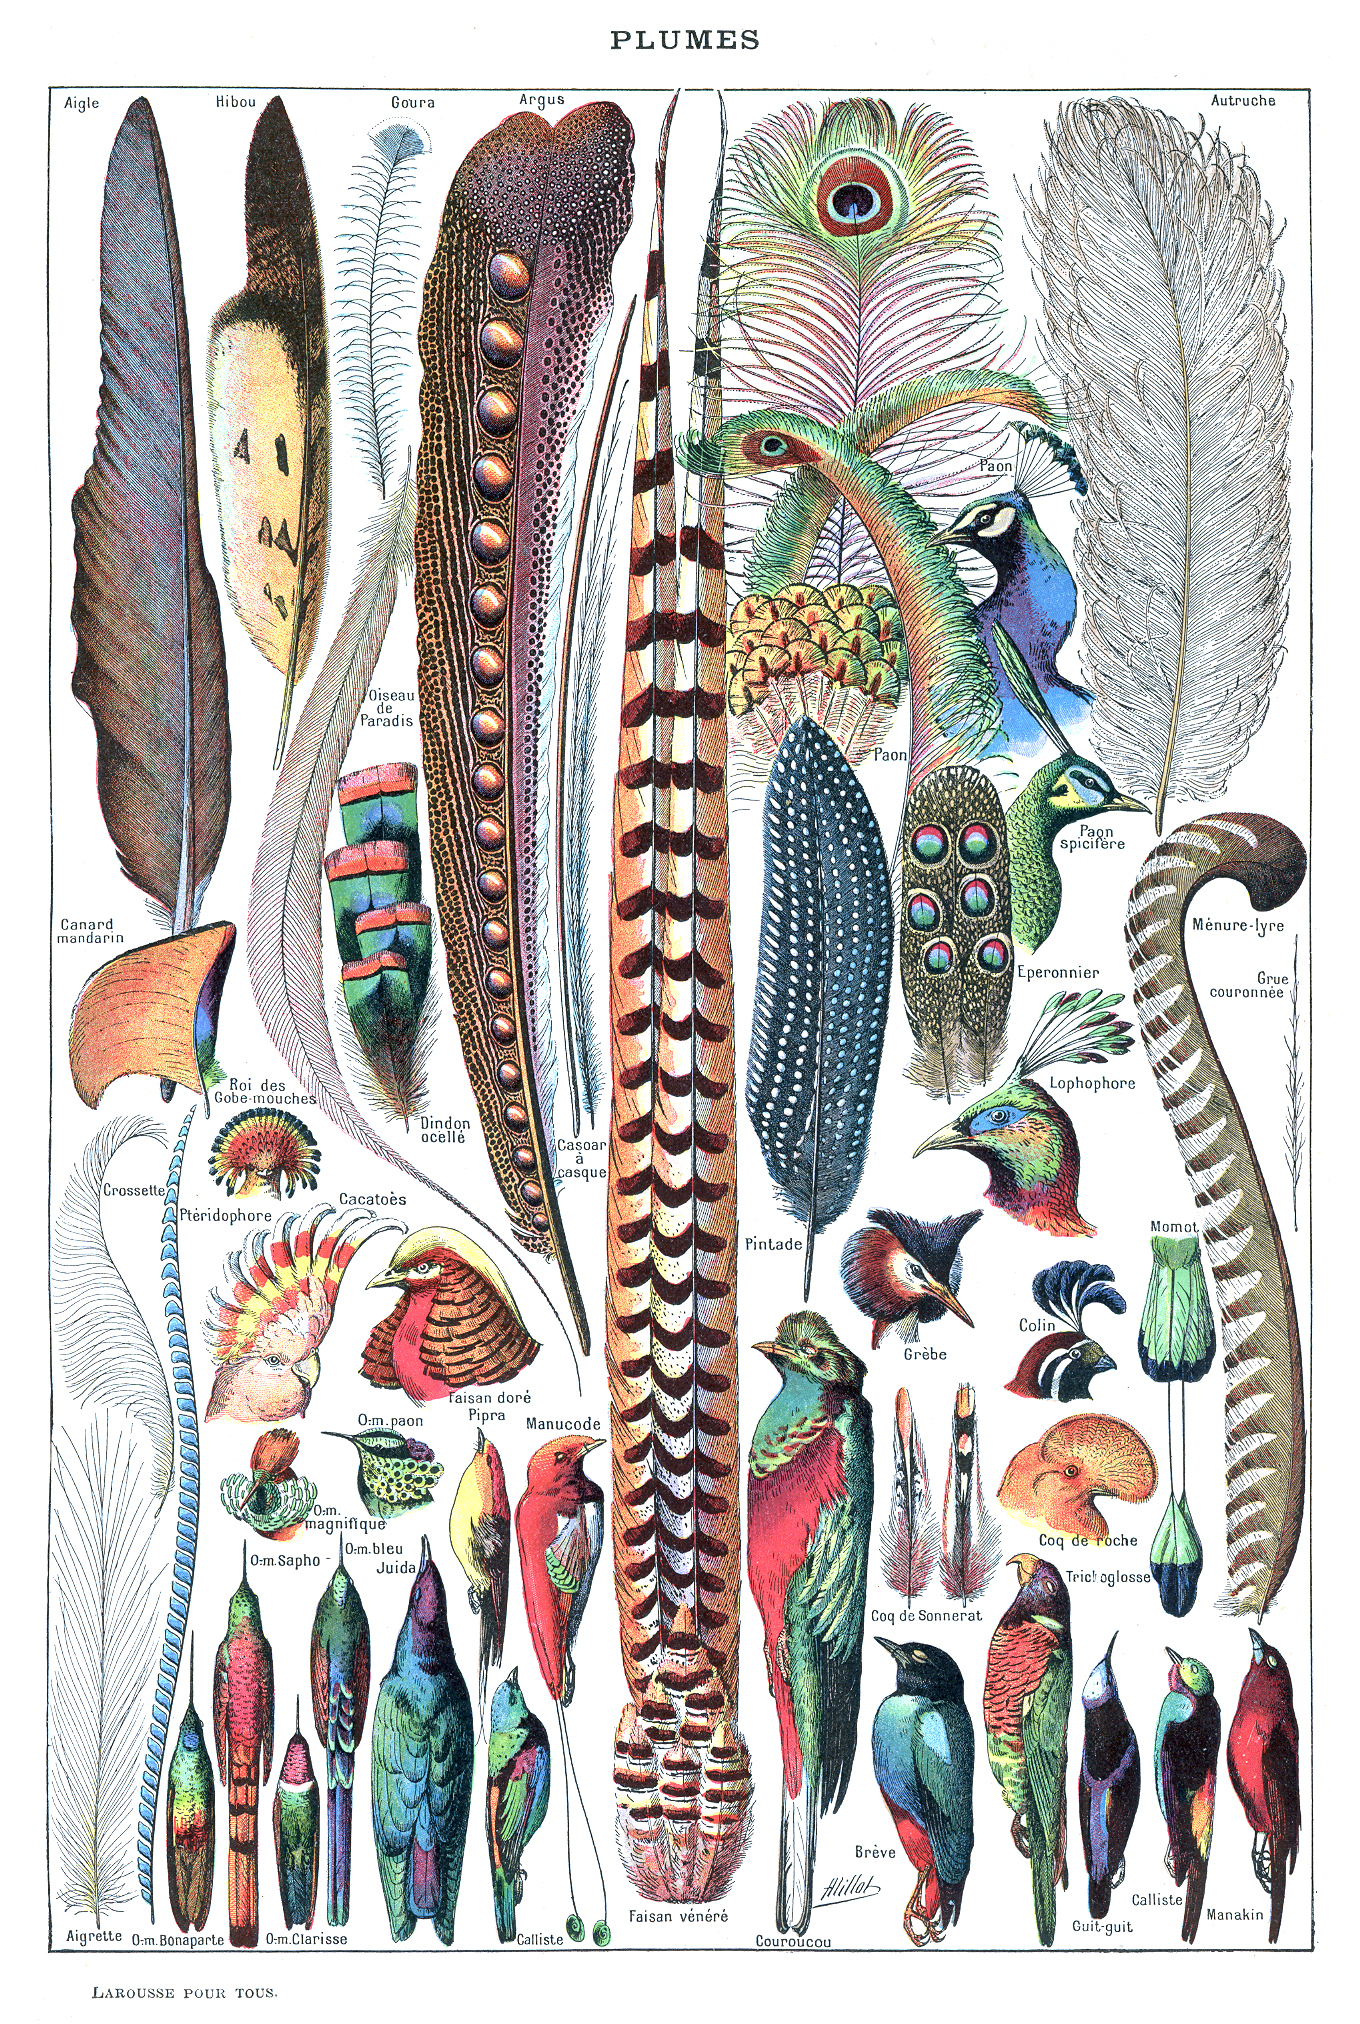 Figure 6.47: The image above shows a wide variety of bird feathers. Click on the image to open a larger version in a new window. Image from URL: http://en.wikipedia.org/wiki/File:Types_de_plumes._-_Larousse_pour_tous,_-1907-1910-.jpg